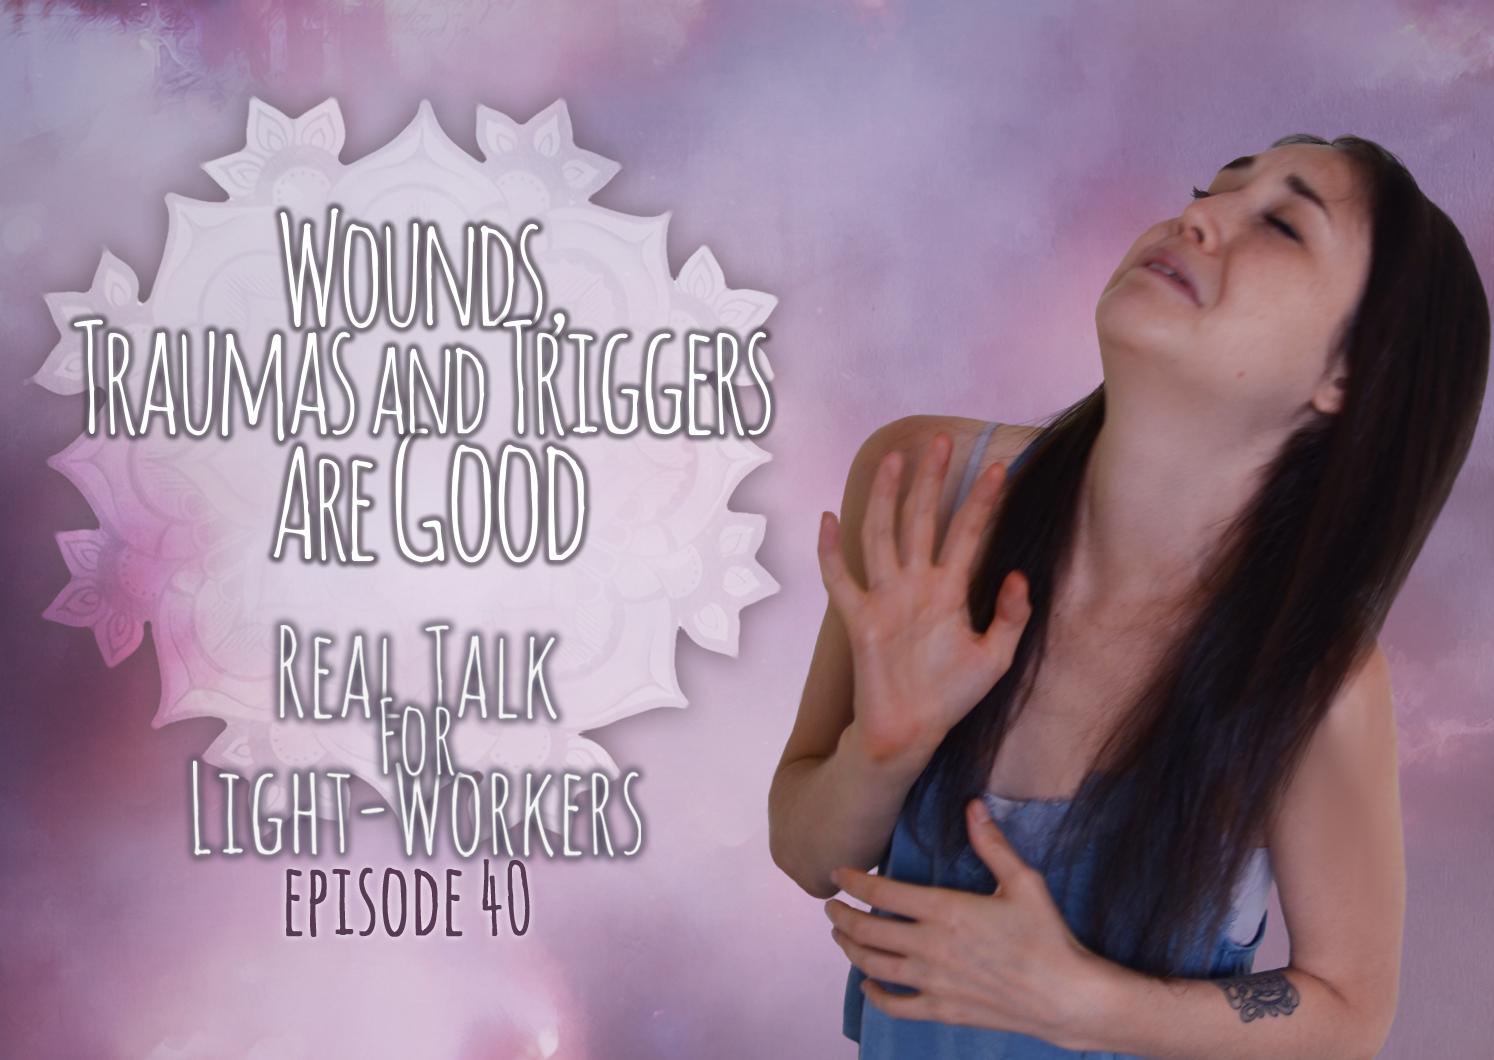 R.T.F.L.W.E. 40 – Wounds Traumas and Triggers Are Good